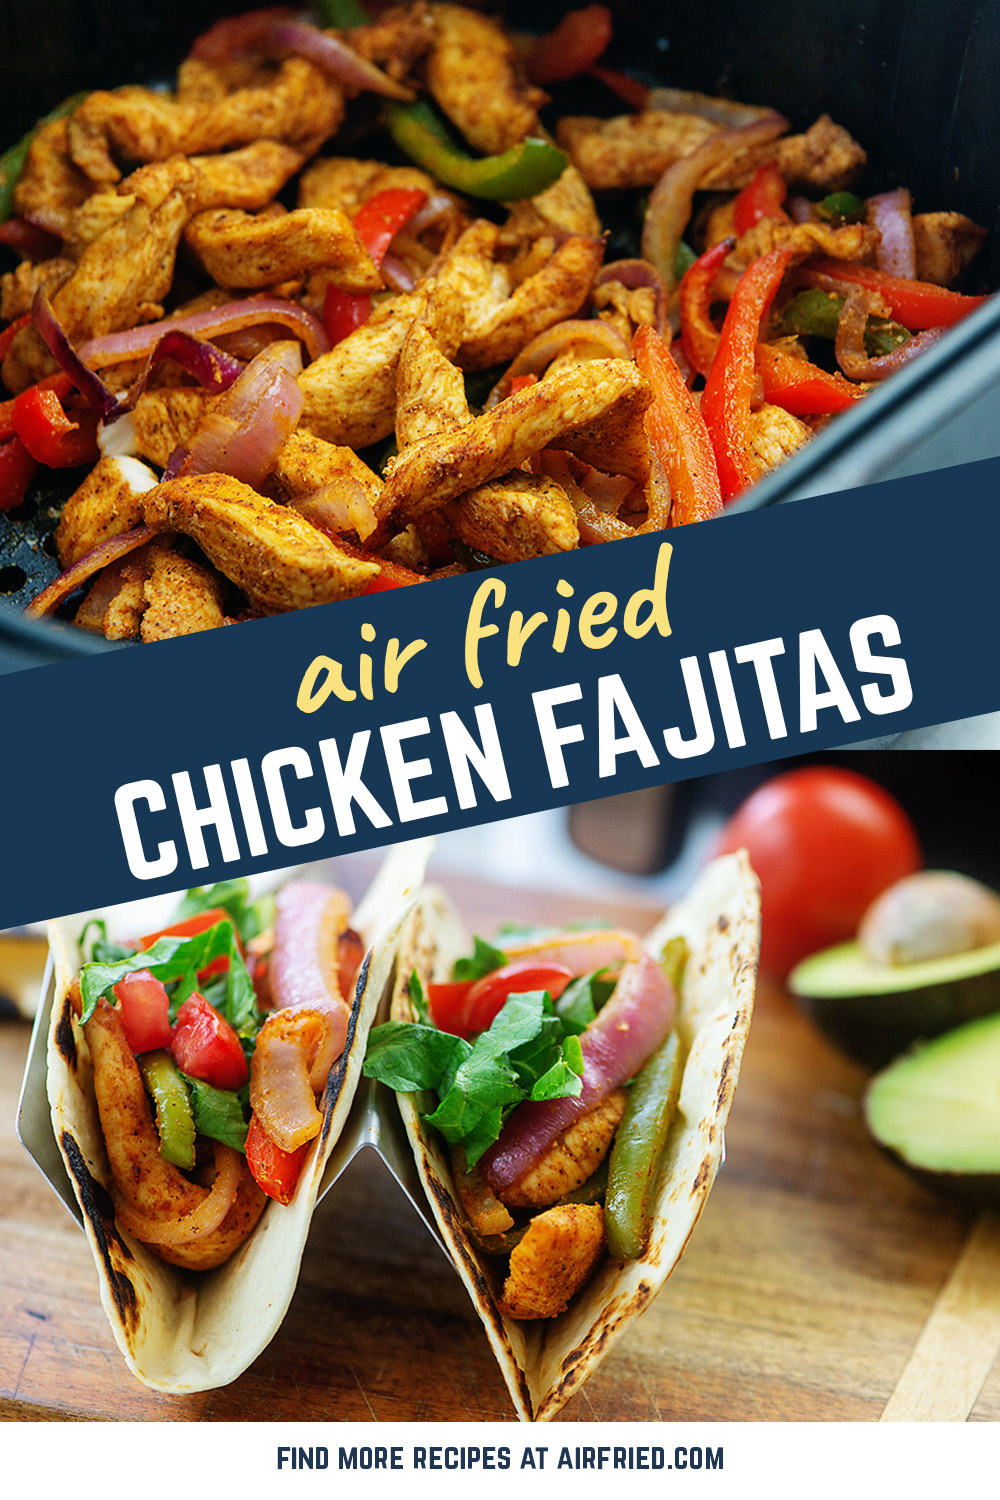 This chicken fajita recipe is cooked in the air fryer for a crisp filling to your fajitas!